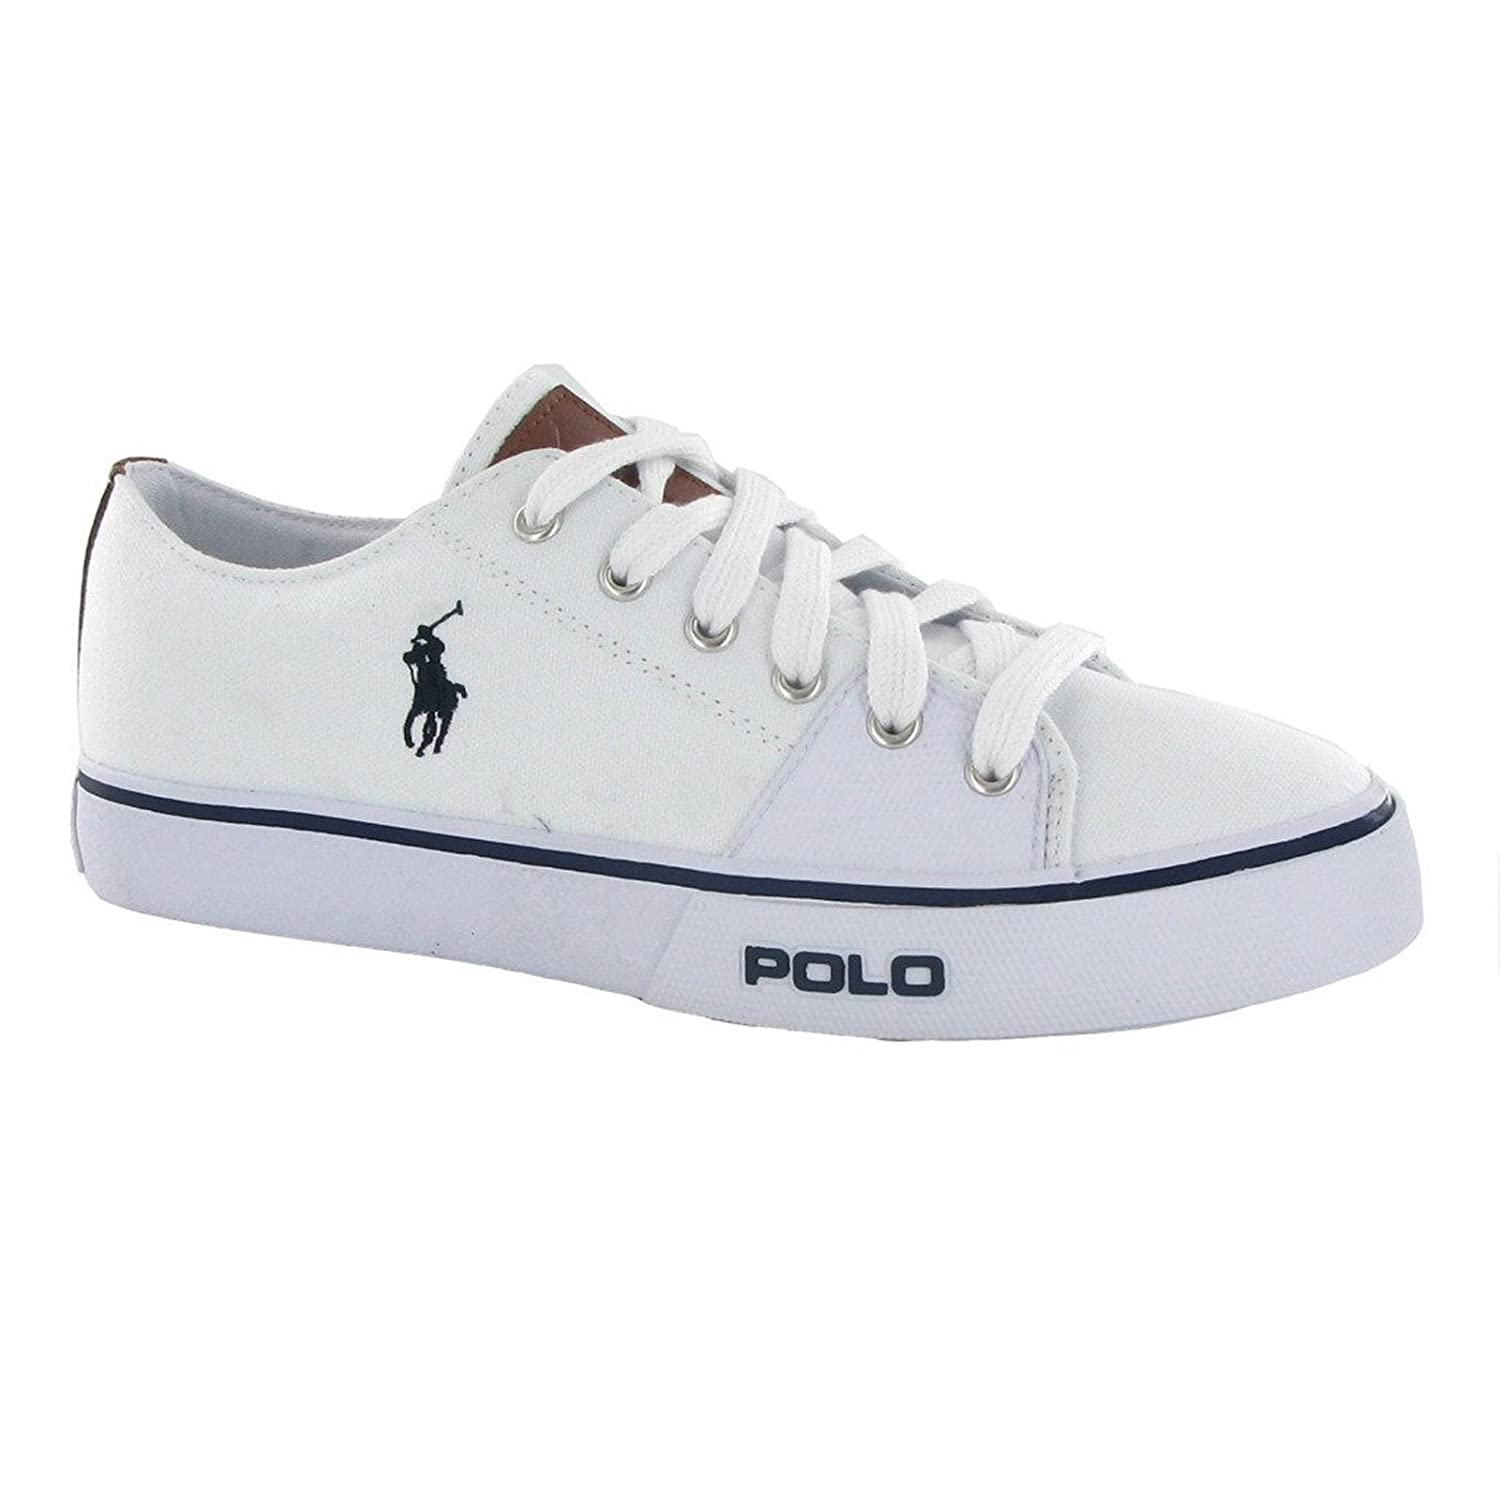 Polo Ralph Lauren Cantor Low White Blue Mens Trainers Size 8 UK Amazoncouk Shoes  Bags